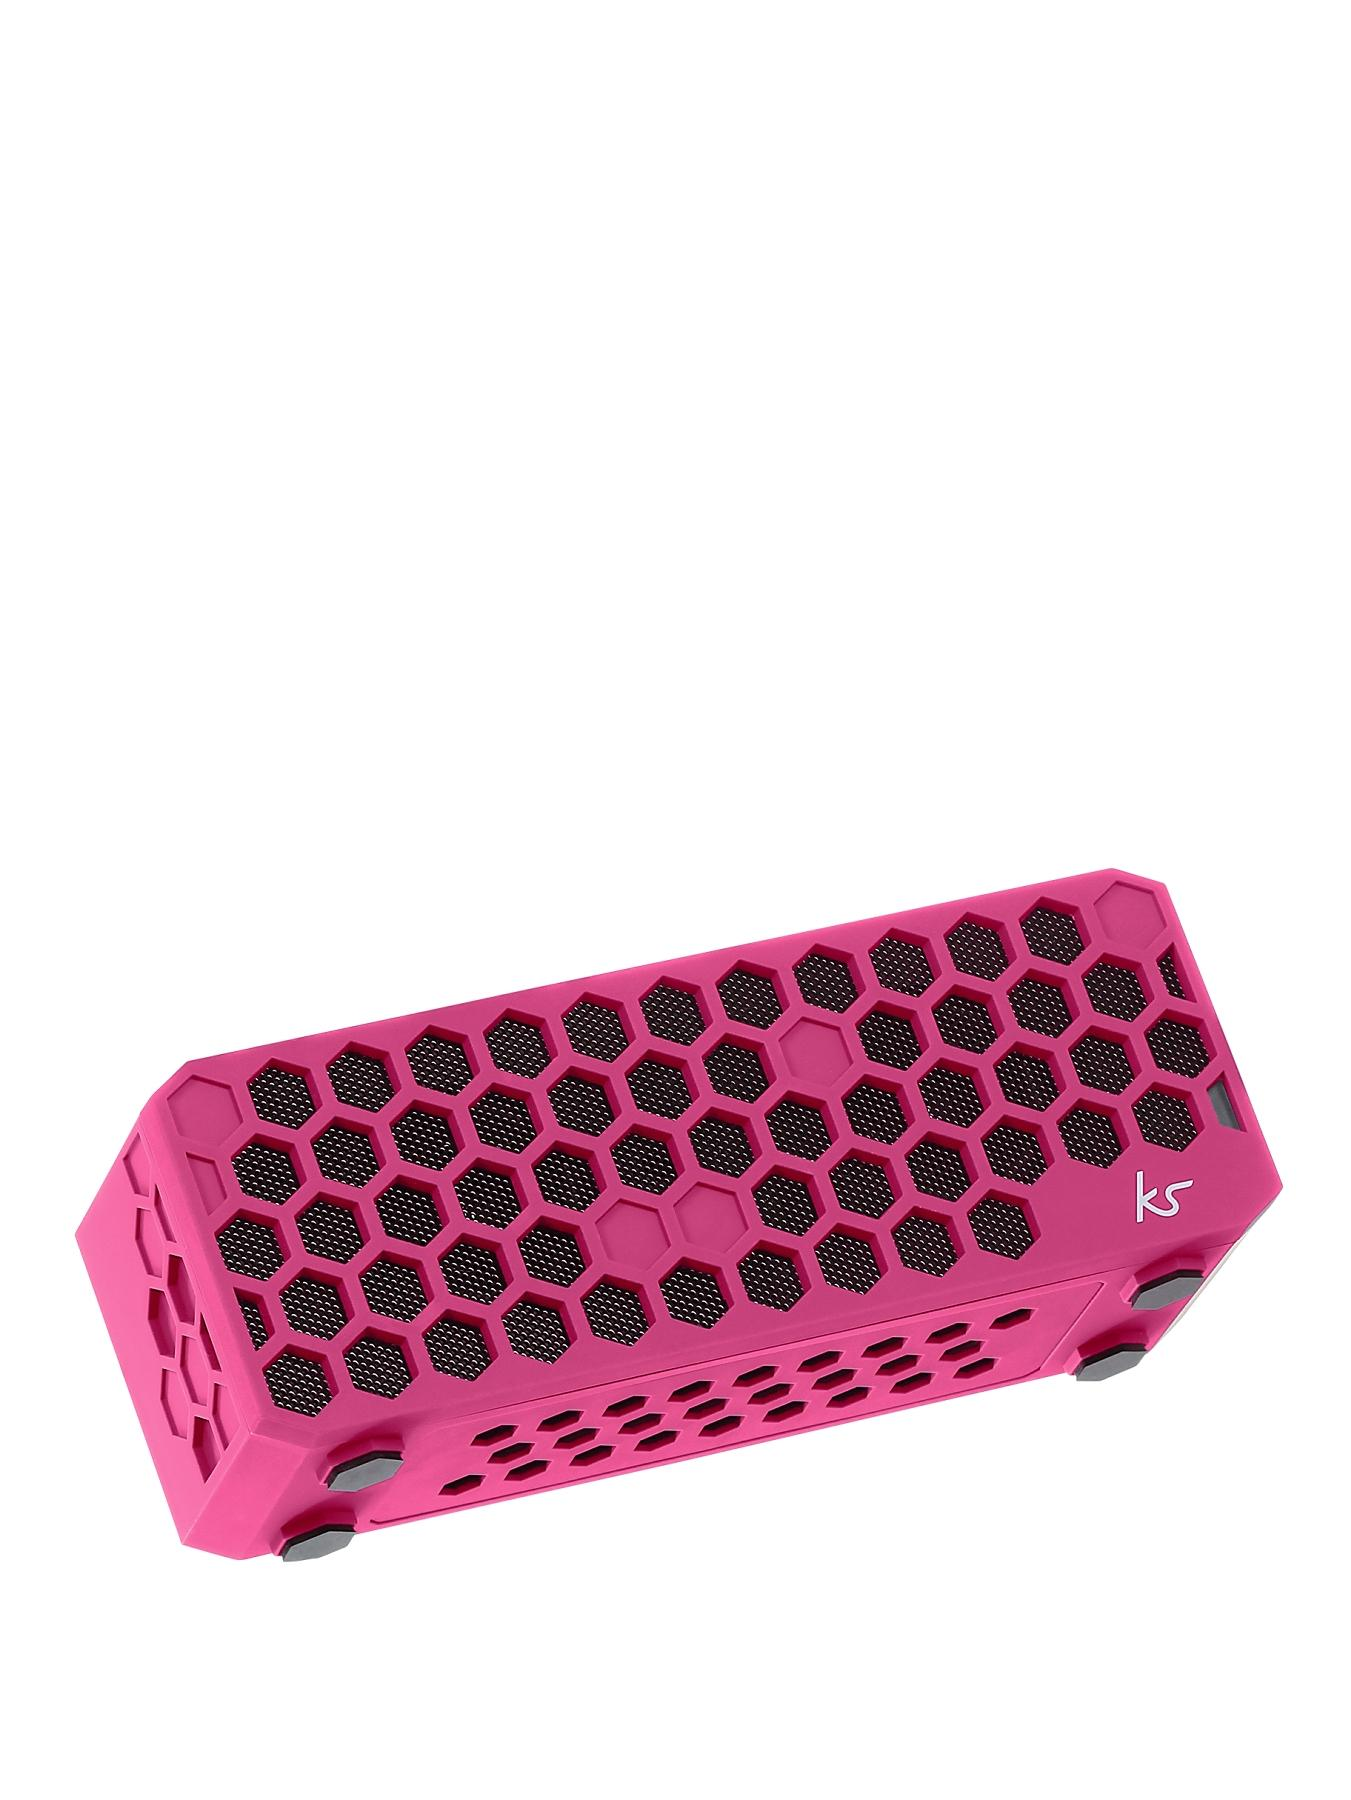 Hive Bluetooth Wireless Portable Stereo Speaker - Pink